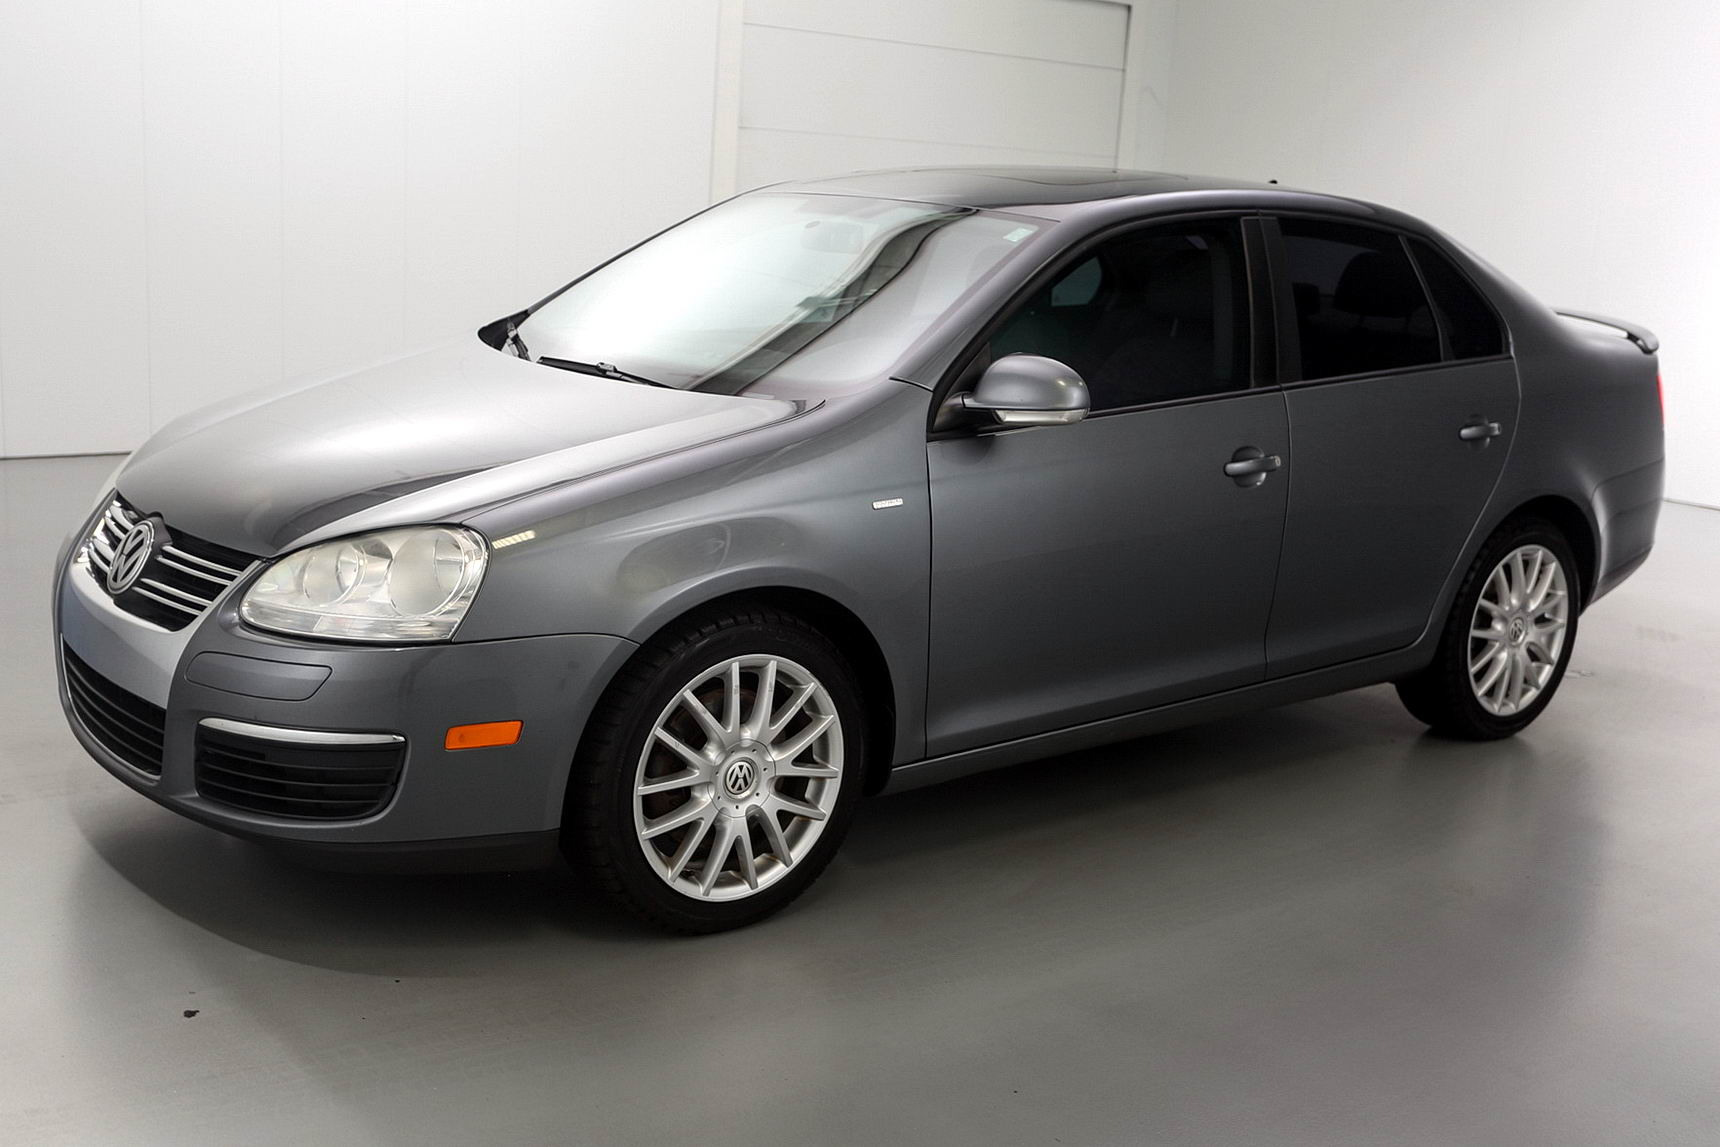 2008 jetta 2.5 review